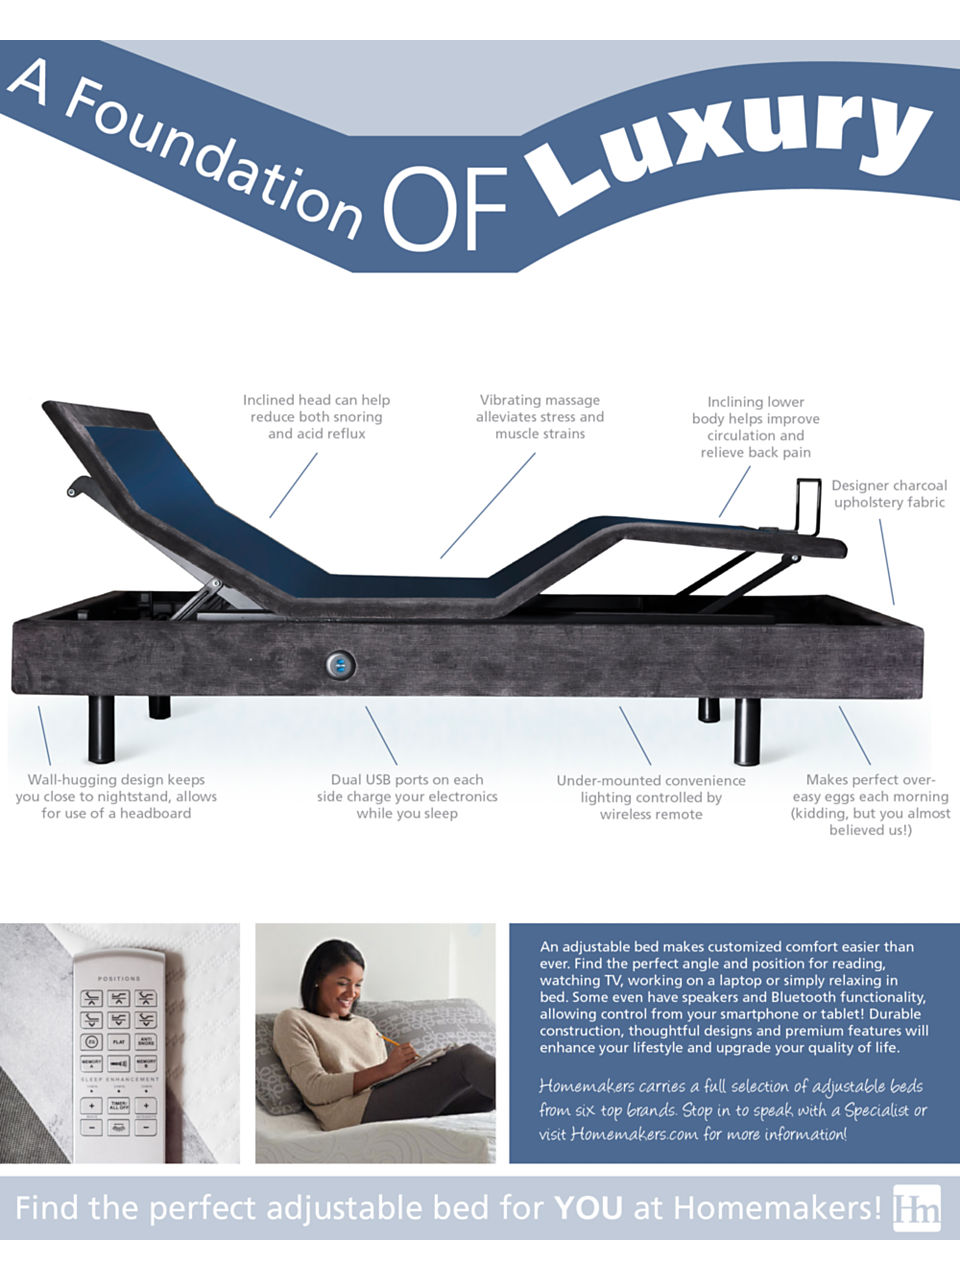 An adjustable base can help you craft a night of better sleep.